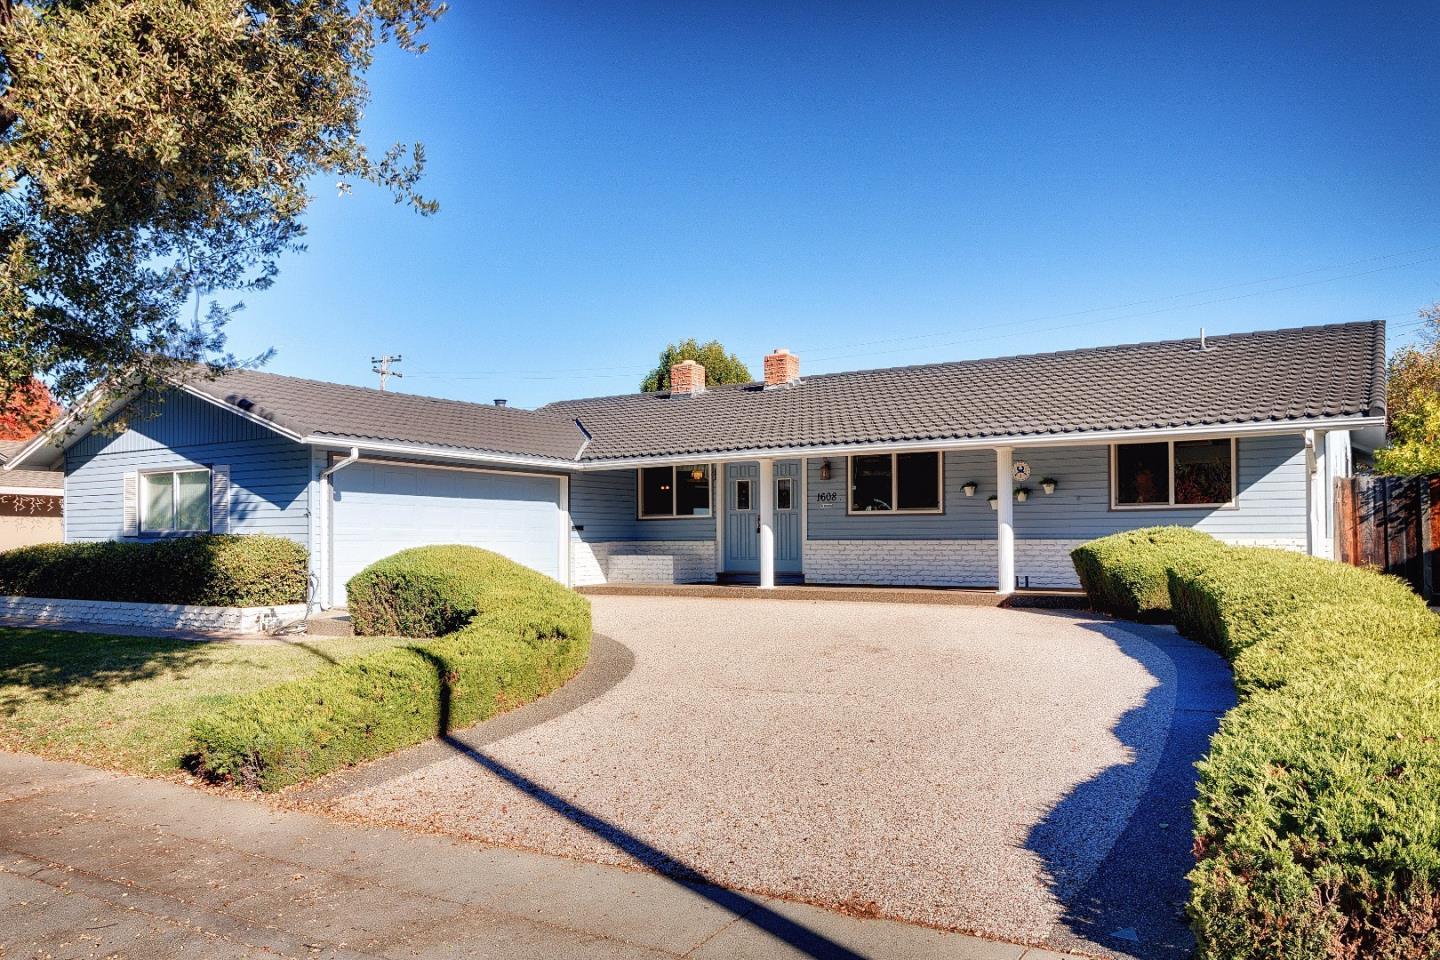 Single Family Home for Sale at 1608 Kennewick Drive 1608 Kennewick Drive Sunnyvale, California 94087 United States